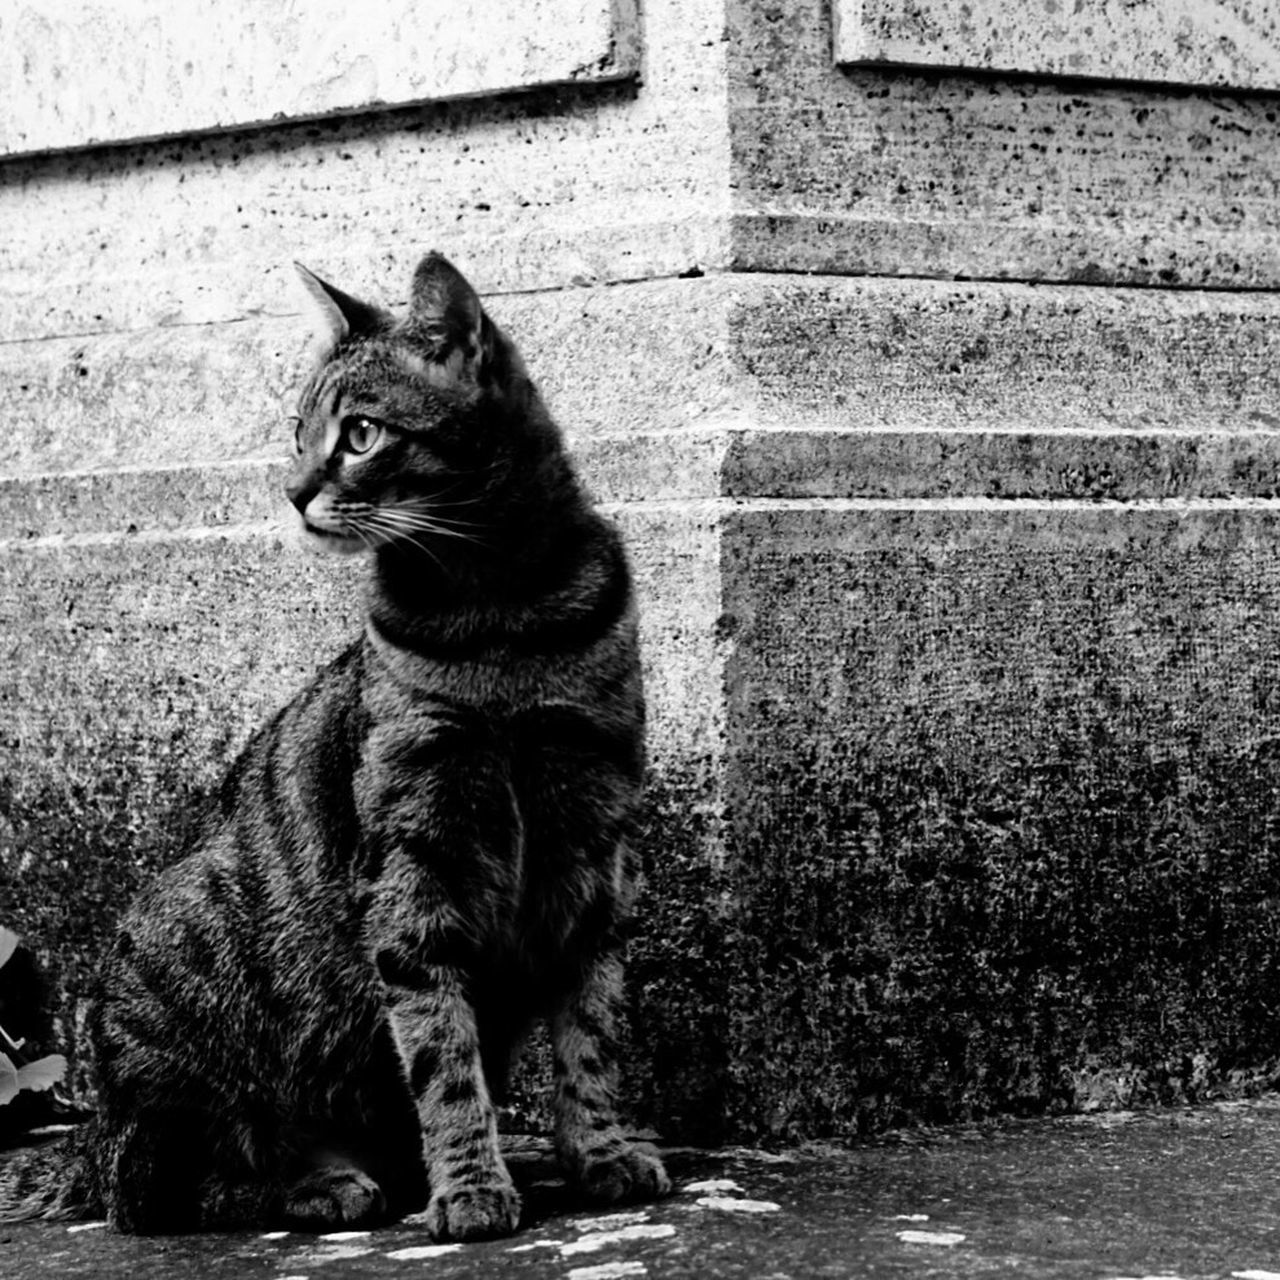 domestic cat, animal themes, feline, one animal, pets, cat, domestic animals, mammal, sitting, outdoors, day, no people, built structure, architecture, building exterior